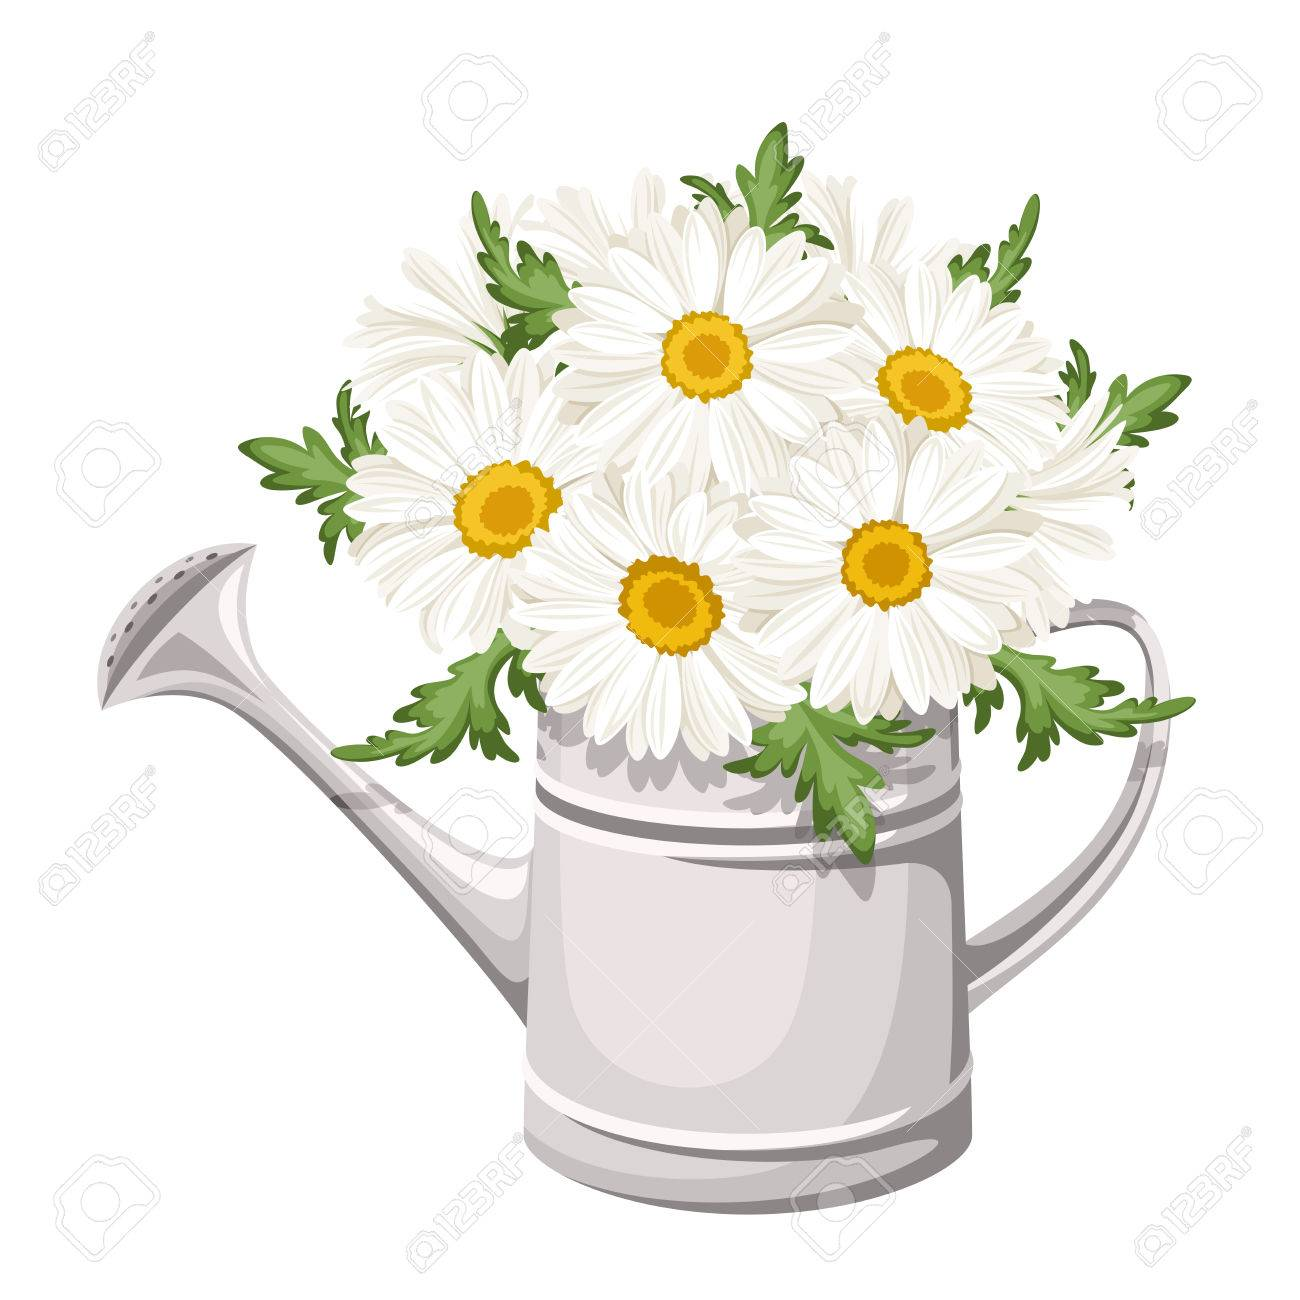 Bouquet of daisies in watering can Vector illustration.